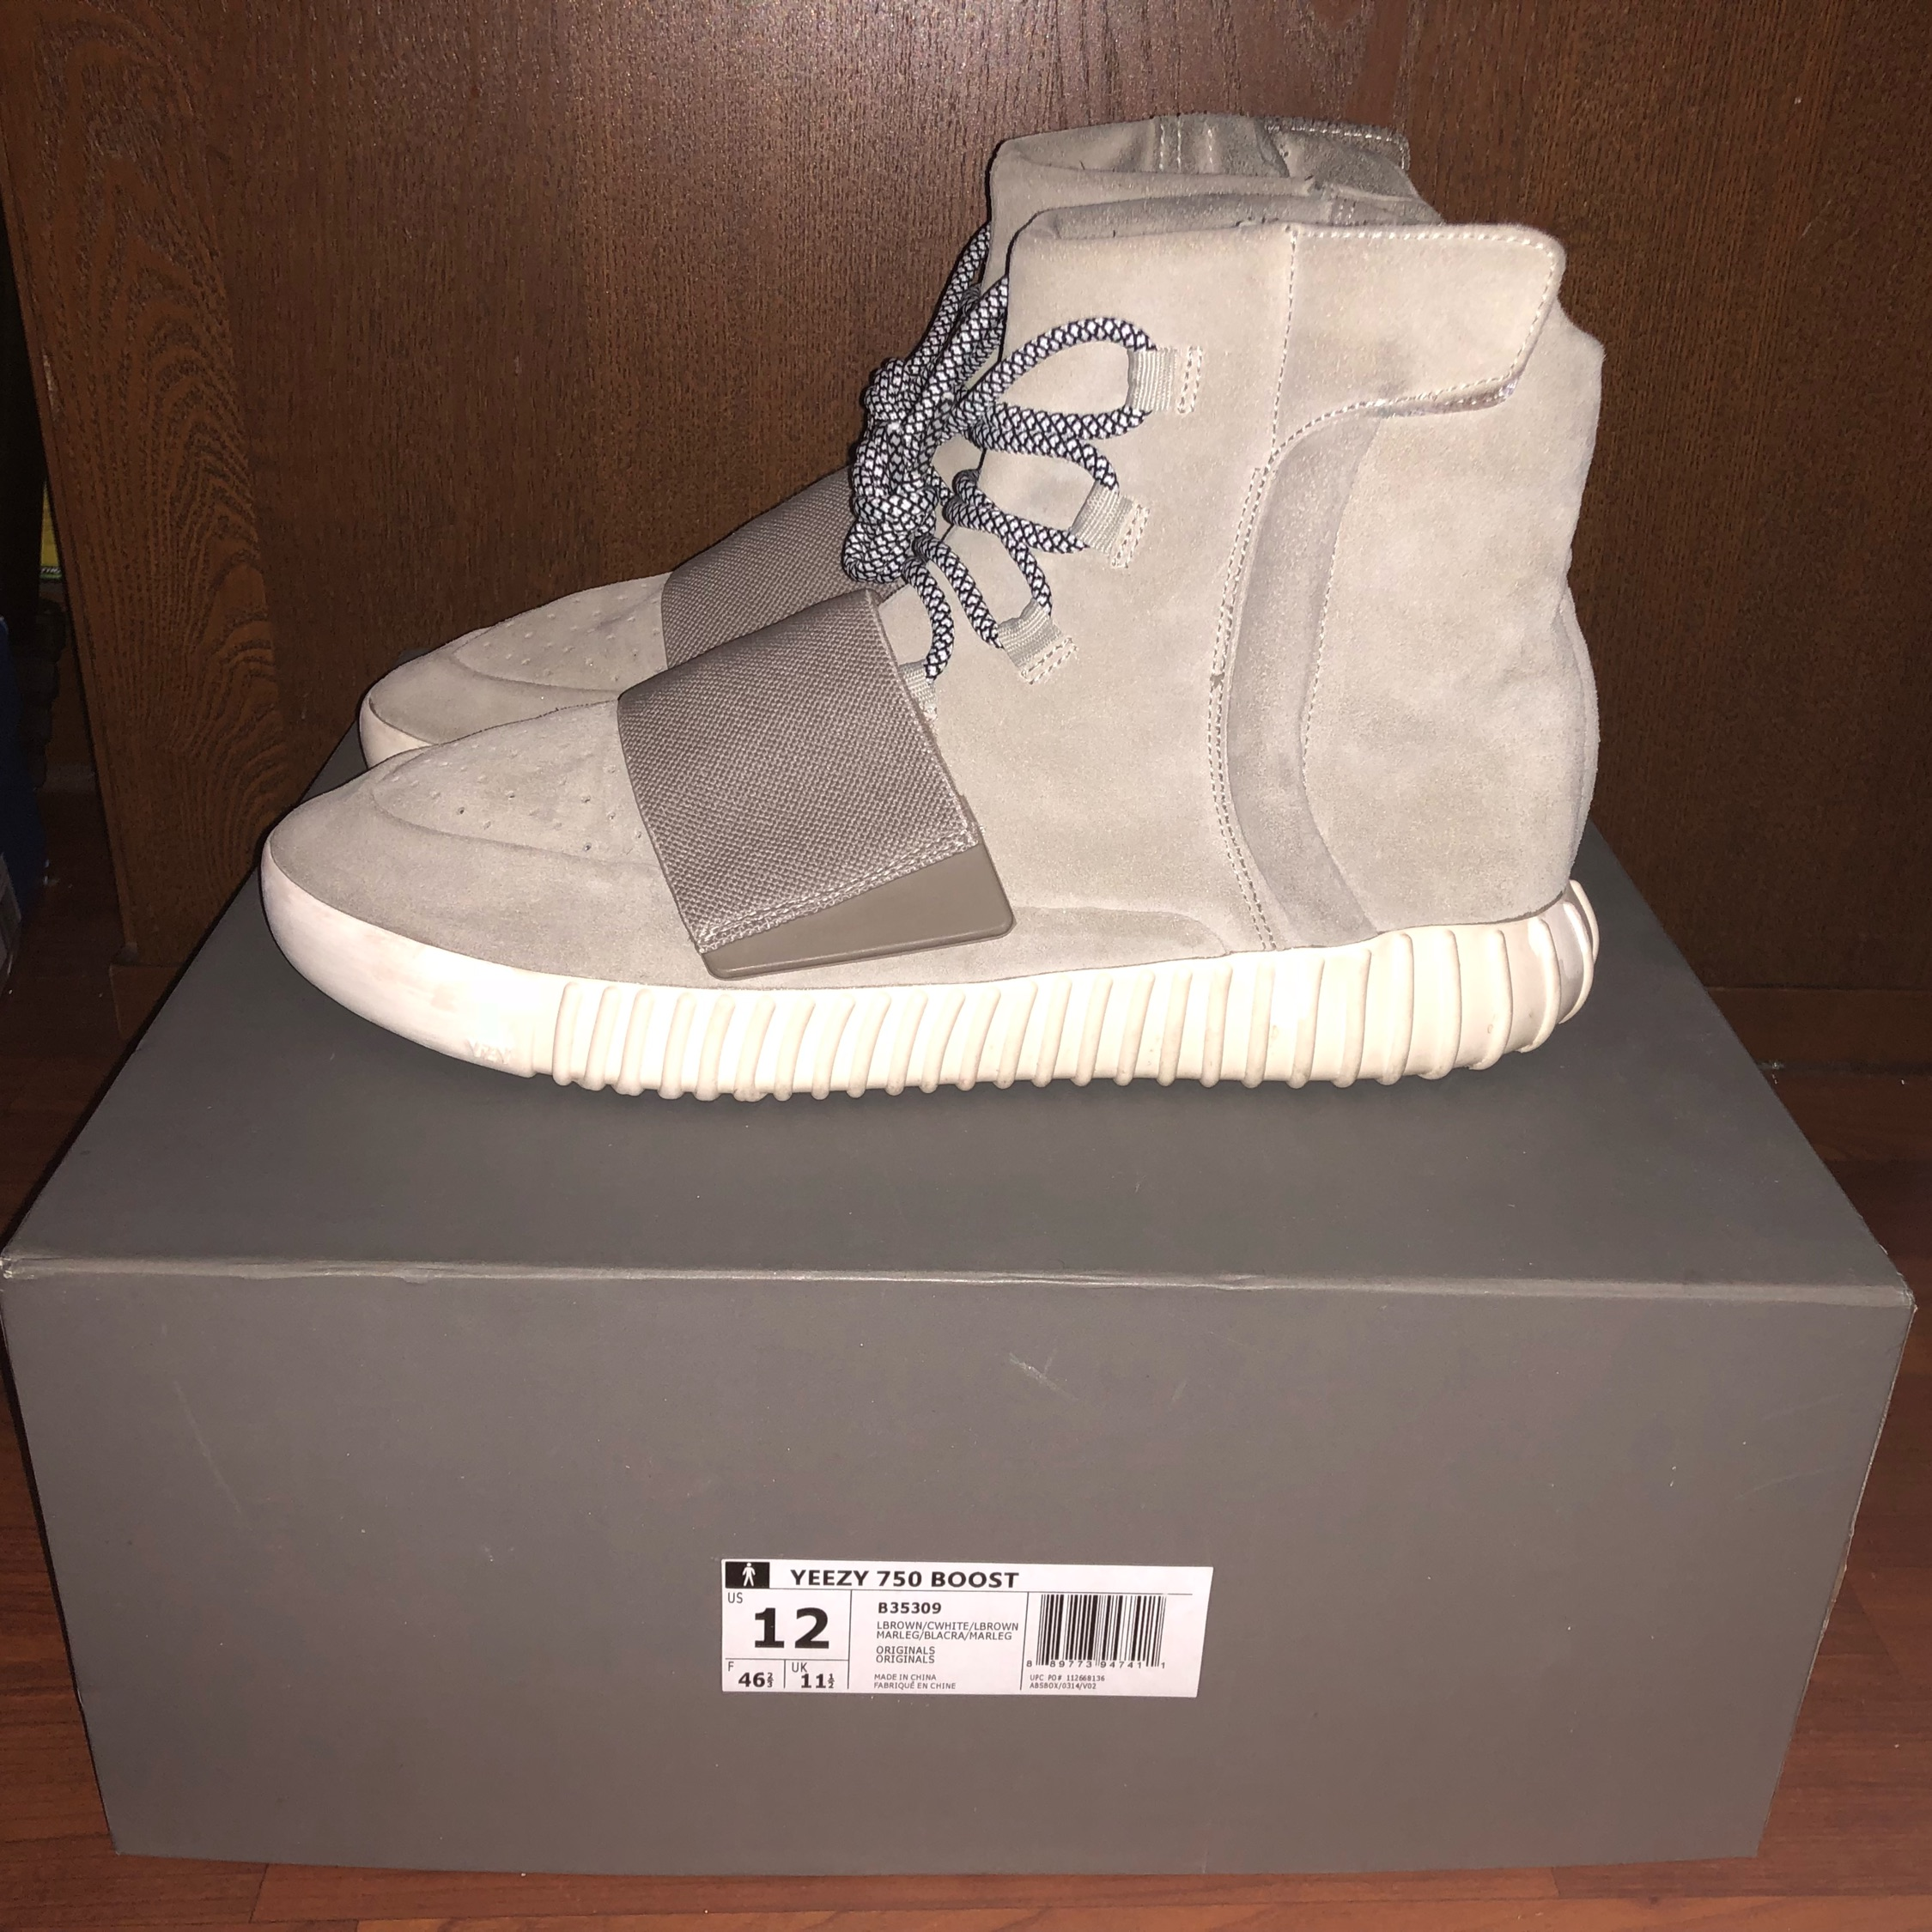 official photos 91528 31ac4 Yeezy 750 Boost Og